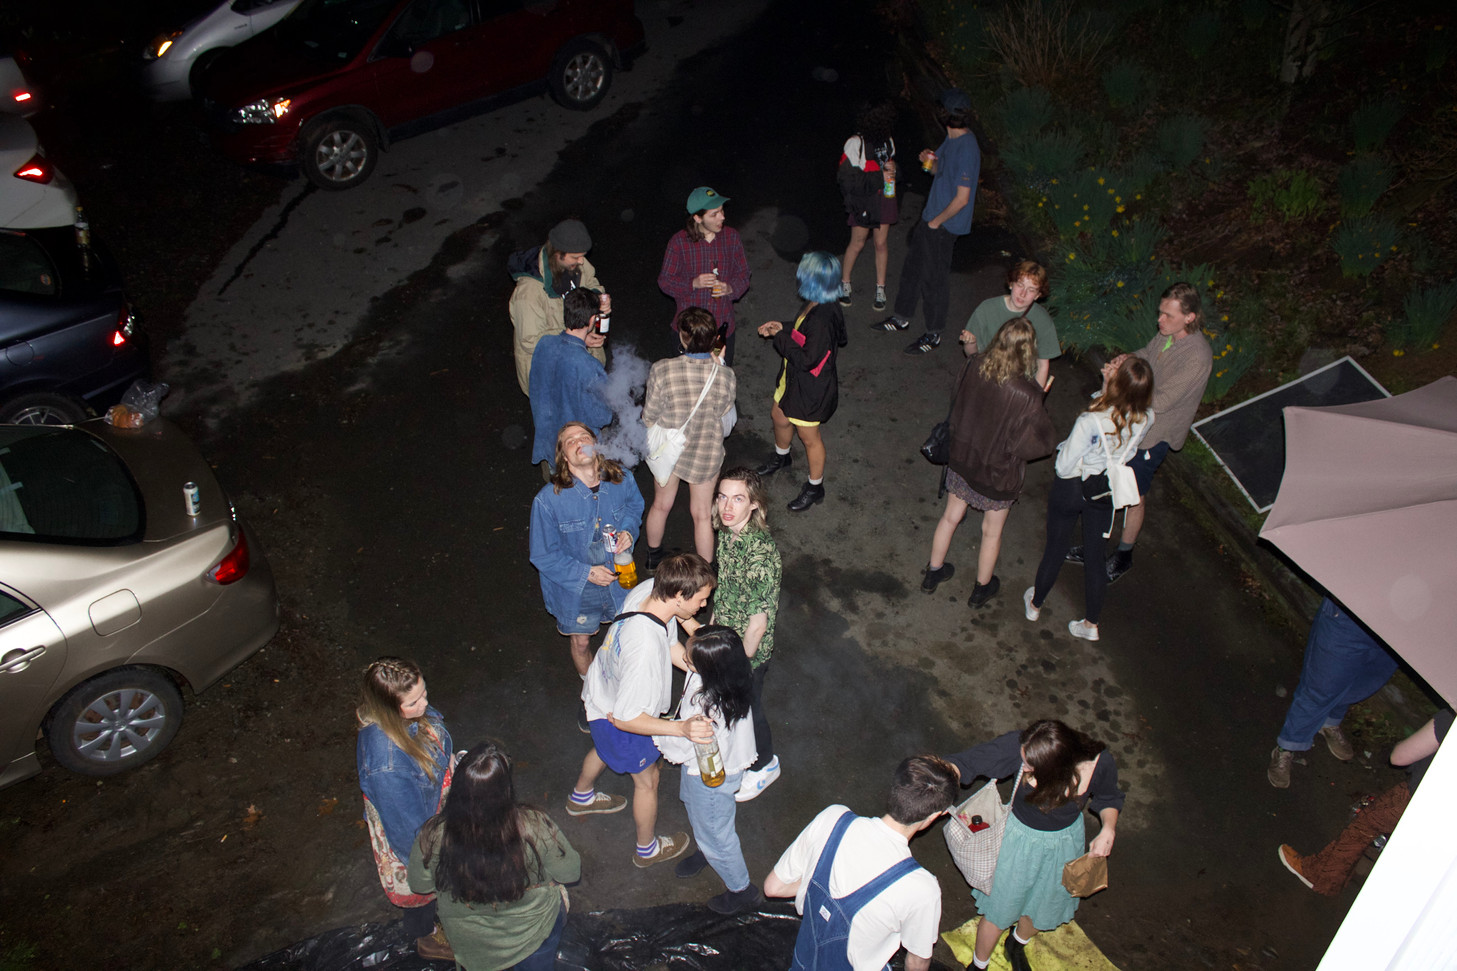 Audience members gather outside of The Womb and greet each other before going in to enjoy some music.